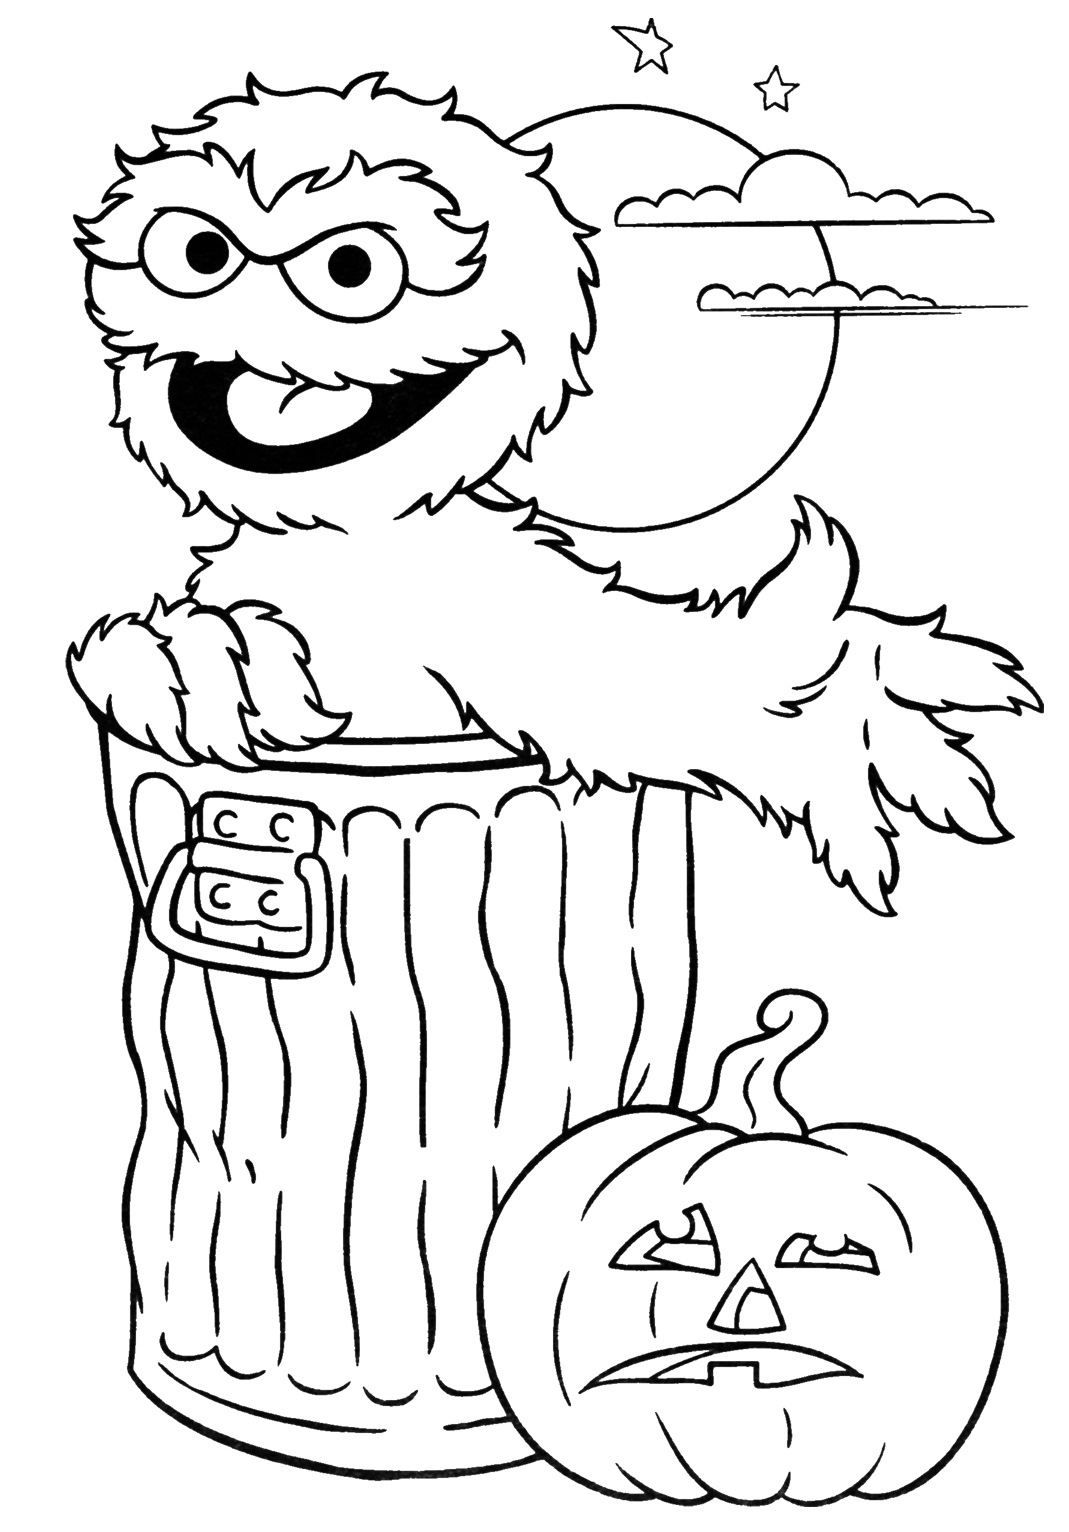 24 Free Halloween Coloring Pages for Kids - Honey + Lime